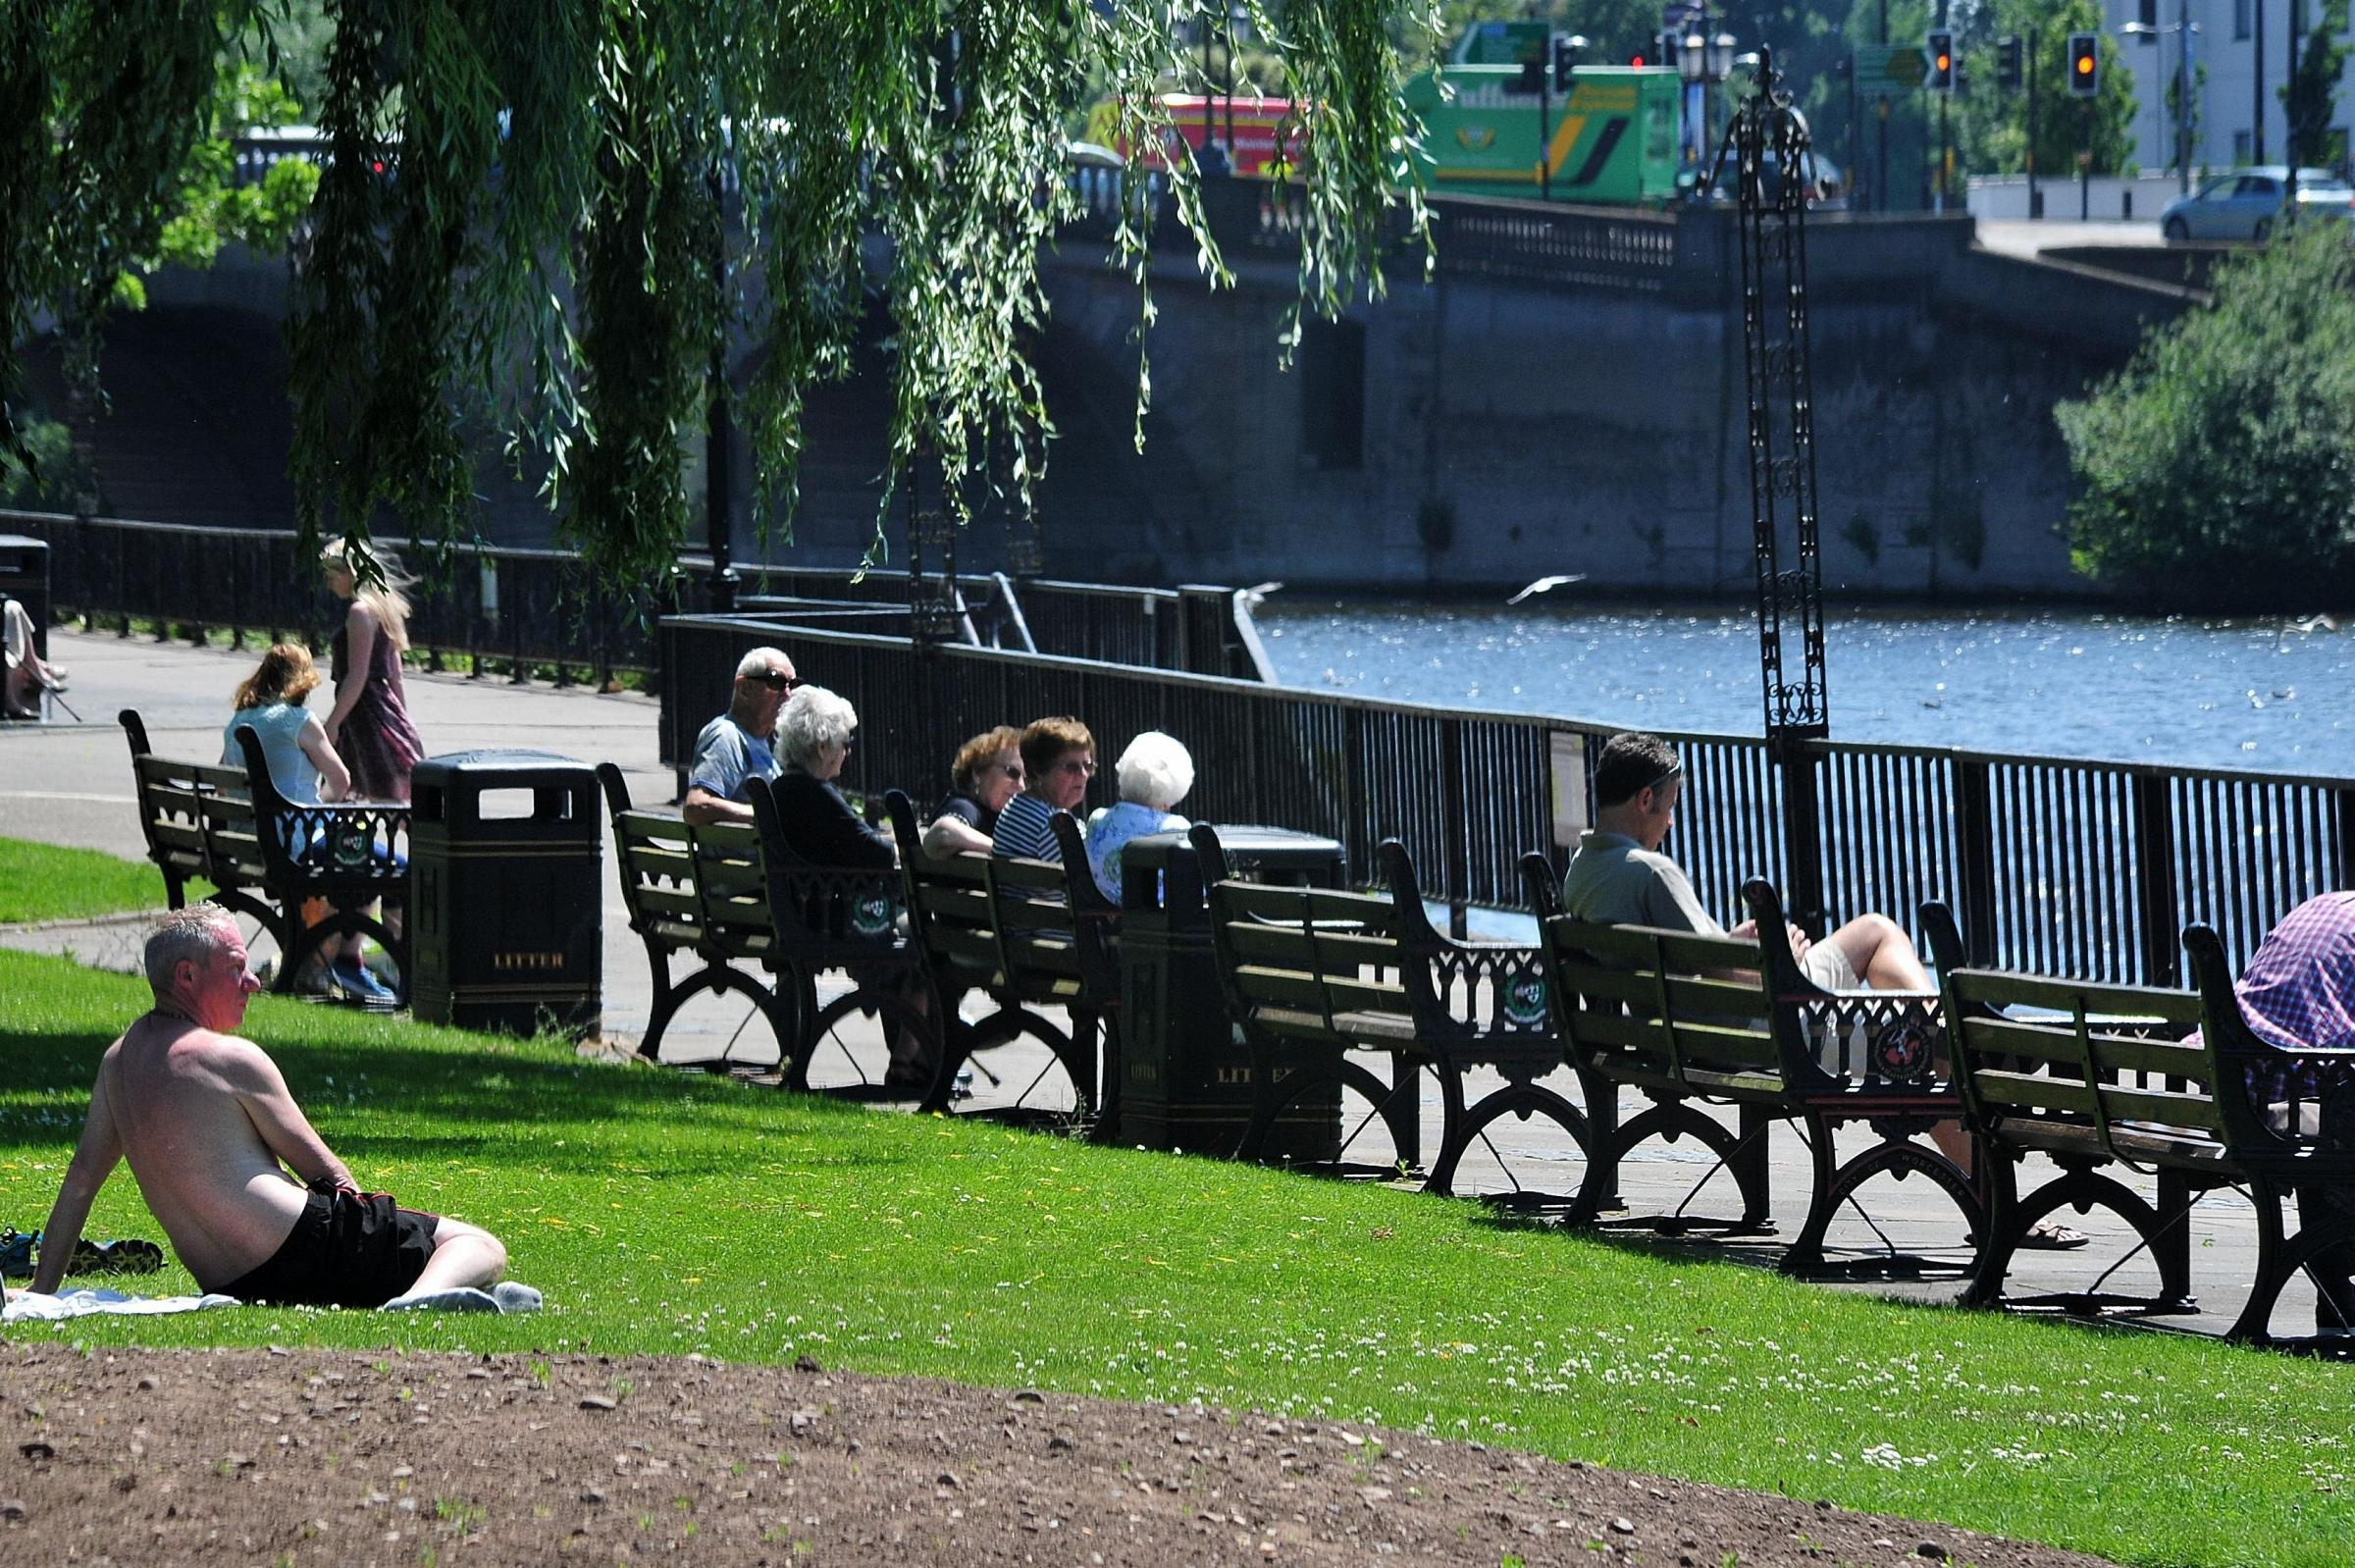 HOT: It could be the hottest day of the year so far today in Worcester